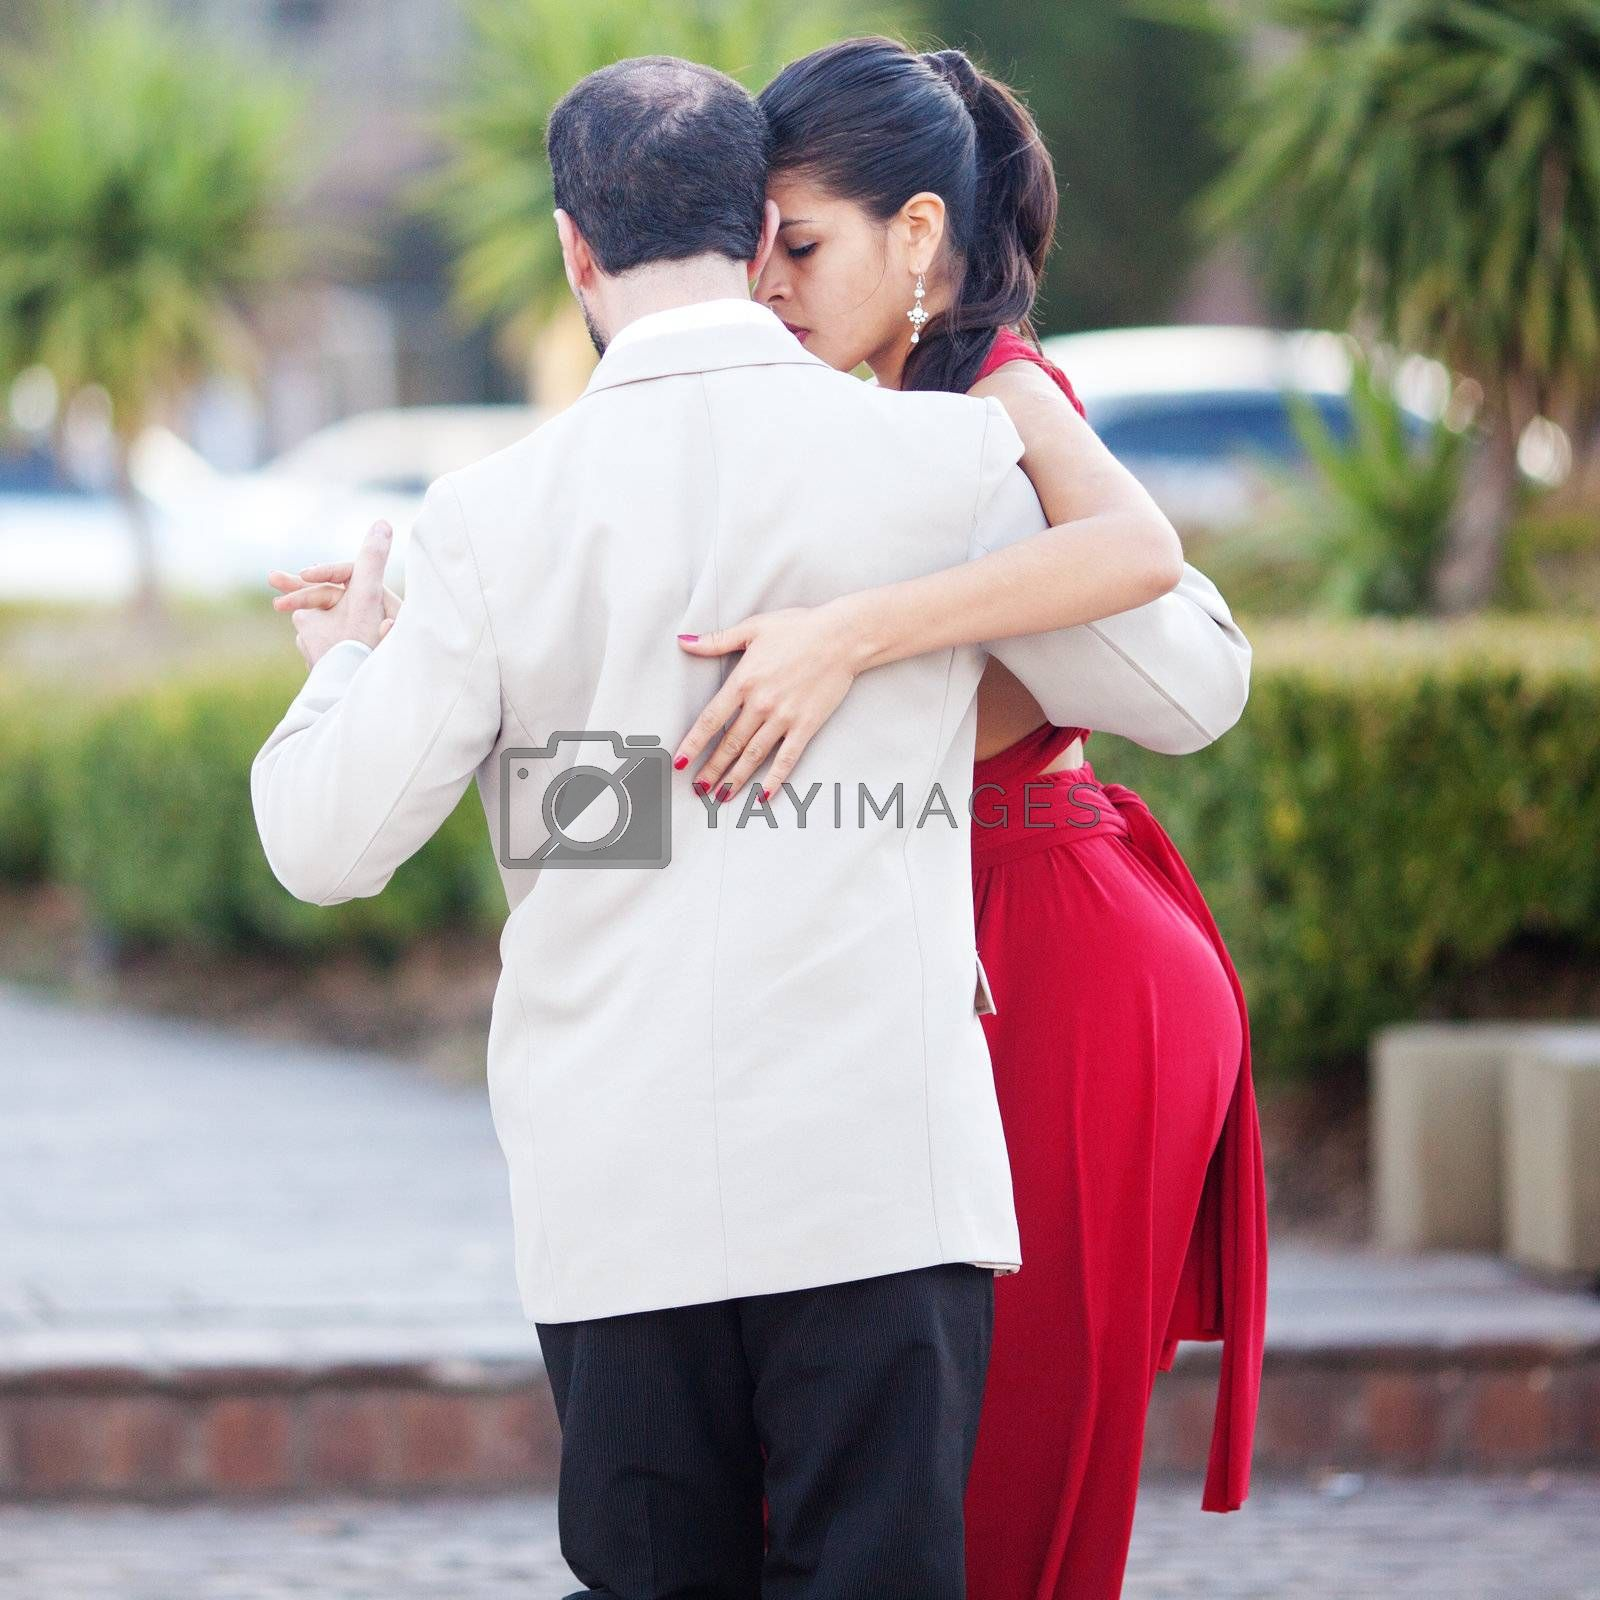 BUENOS AIRES - MAY 1: A pair of tango dancers perform on May 1, 2012  in San Telmo in Buenos Aires, Argentina.